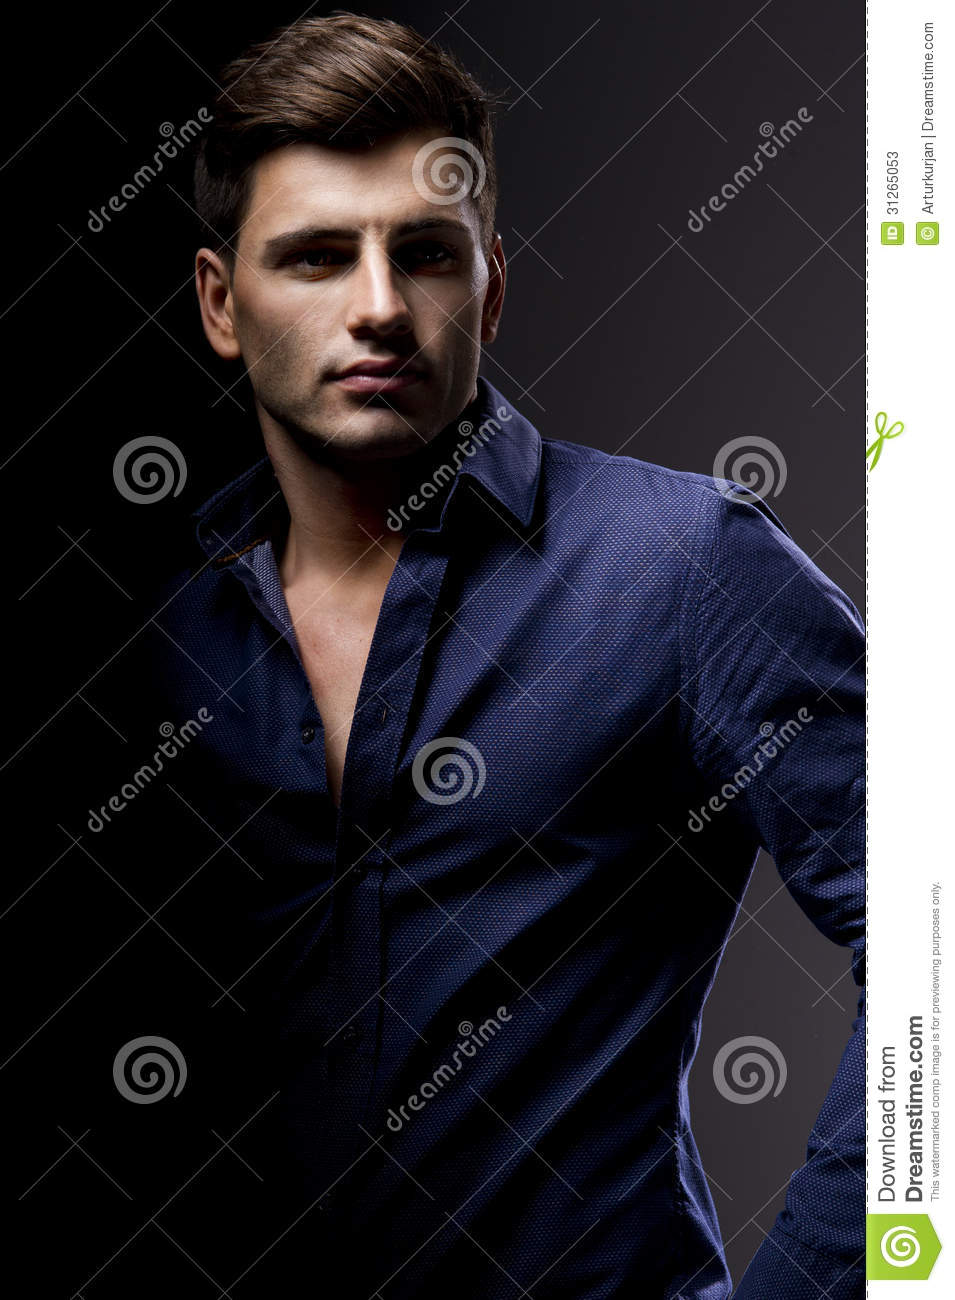 Elegant Young Handsome Man. Stock Photos - Image: 31265053